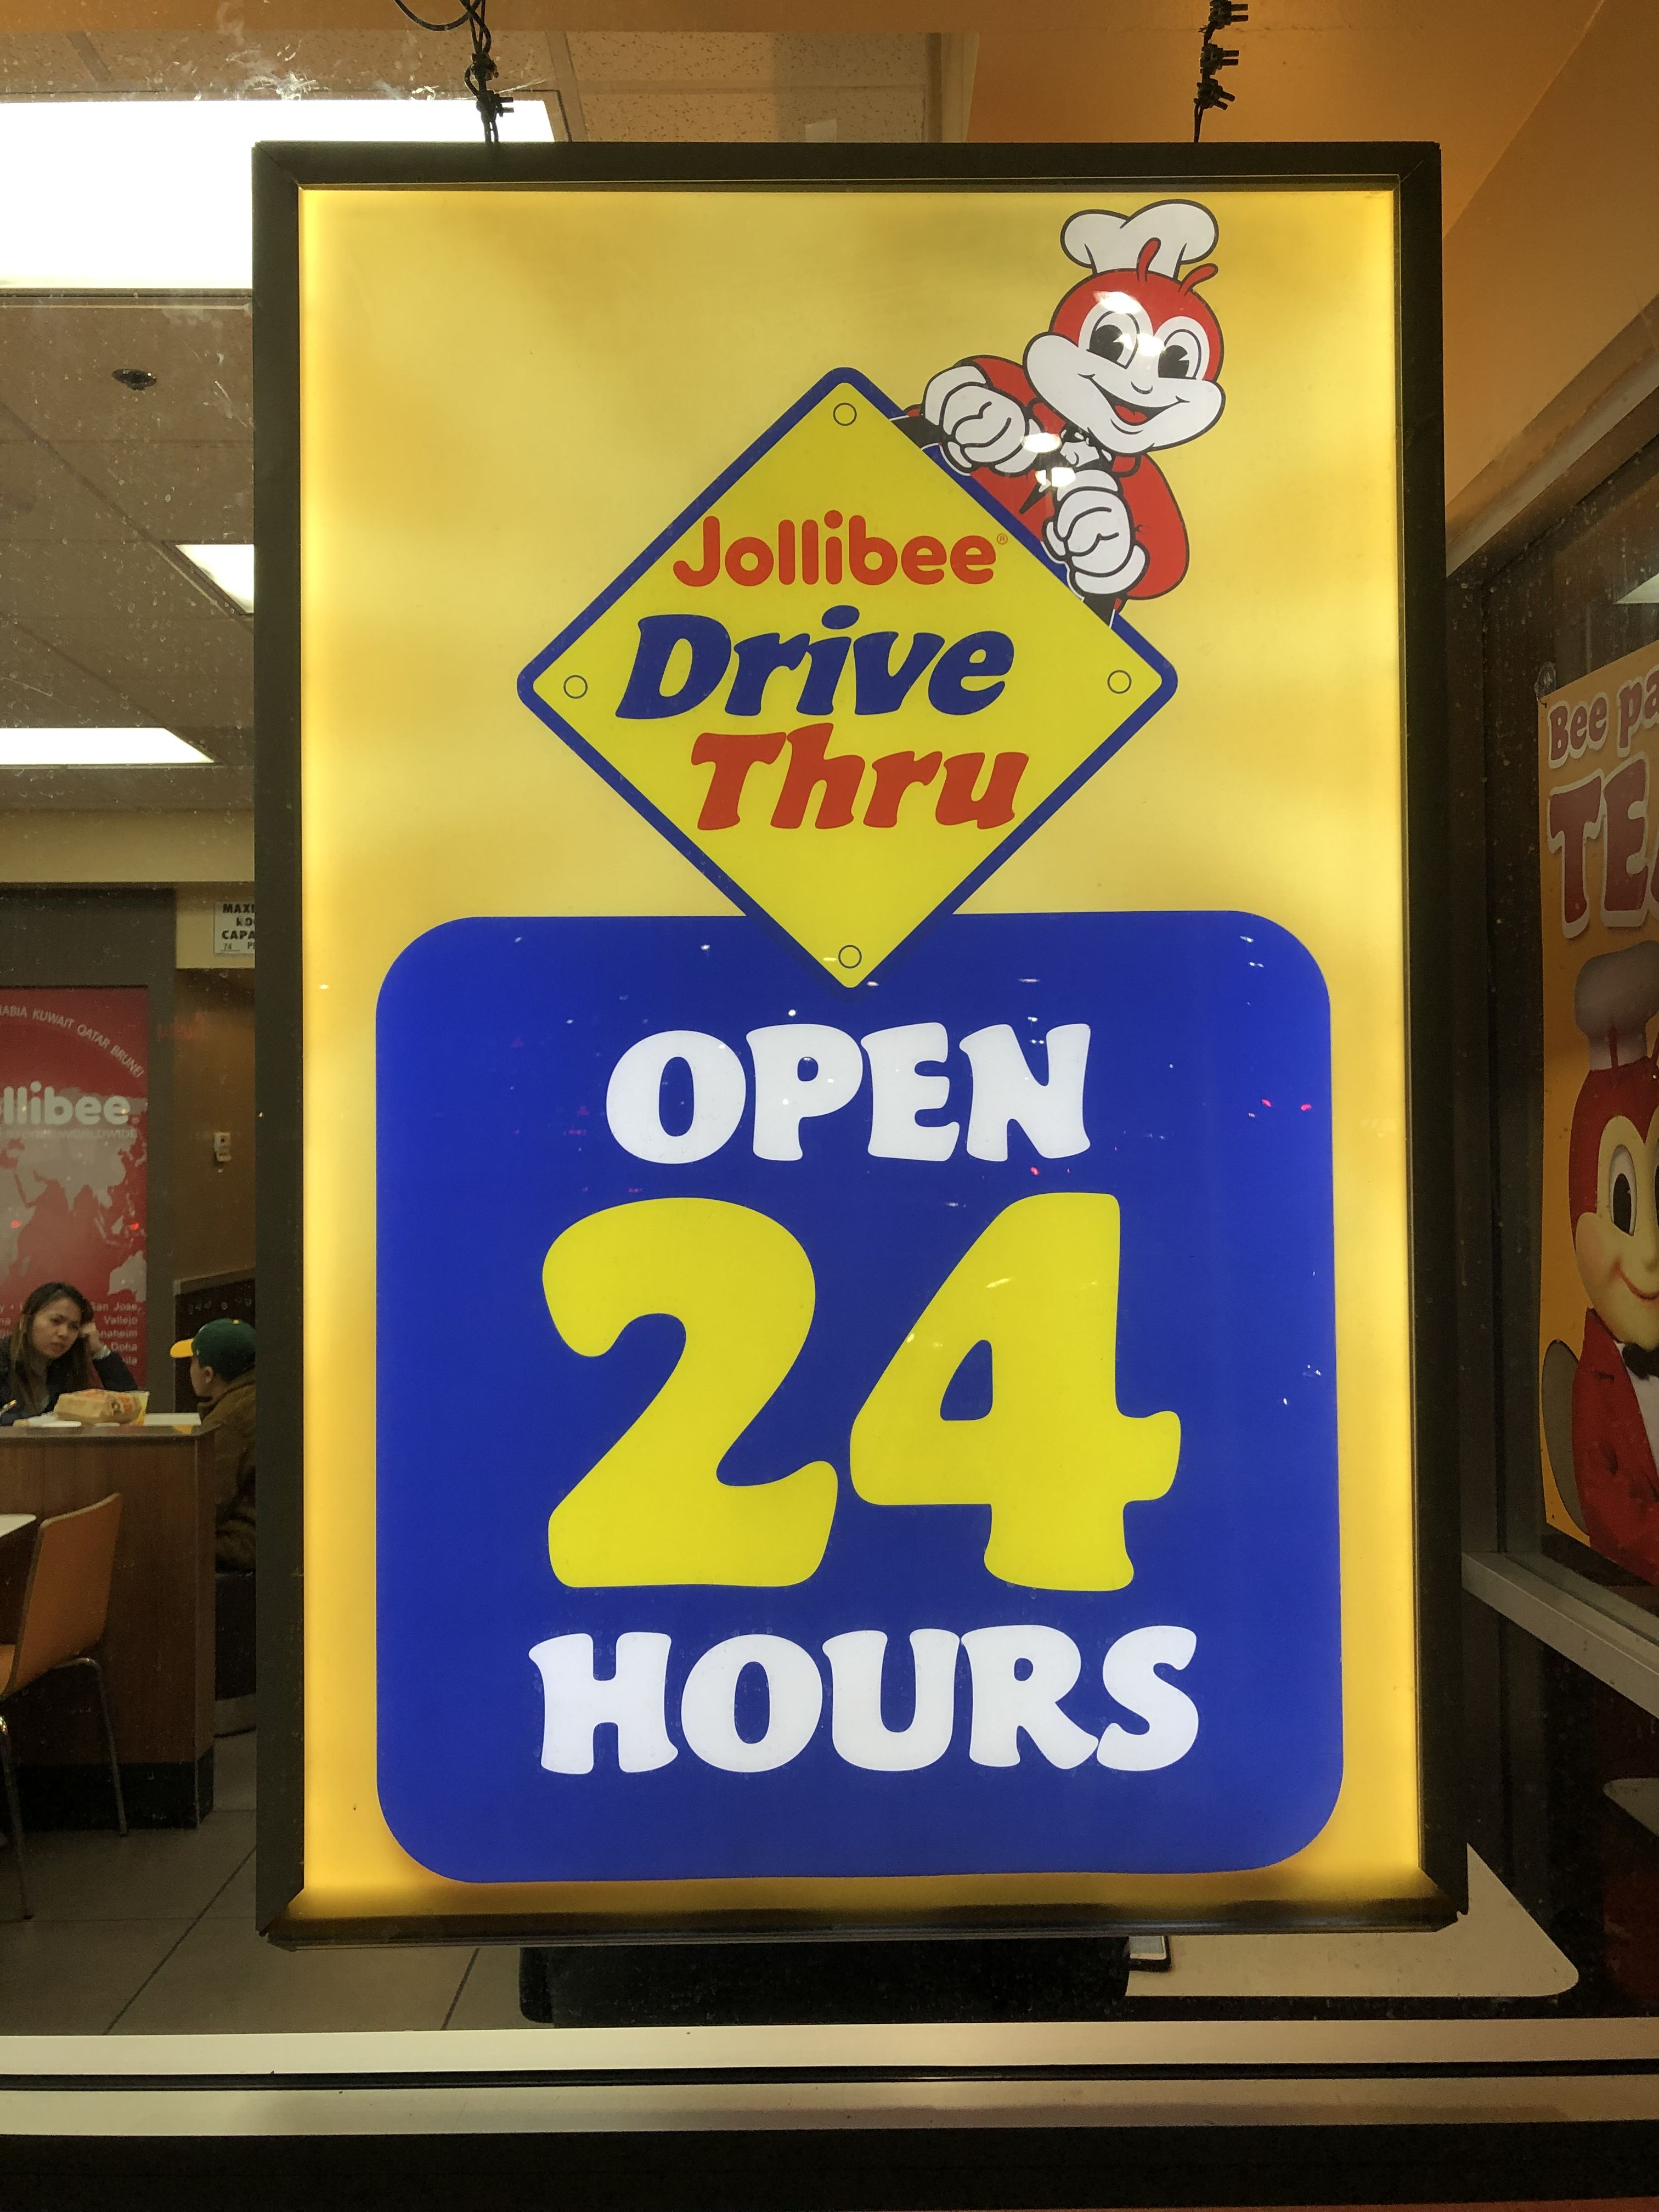 Jollibee S Drive Thru In Union City Open 24 Hours Jollibee Open 24 Hours Union City